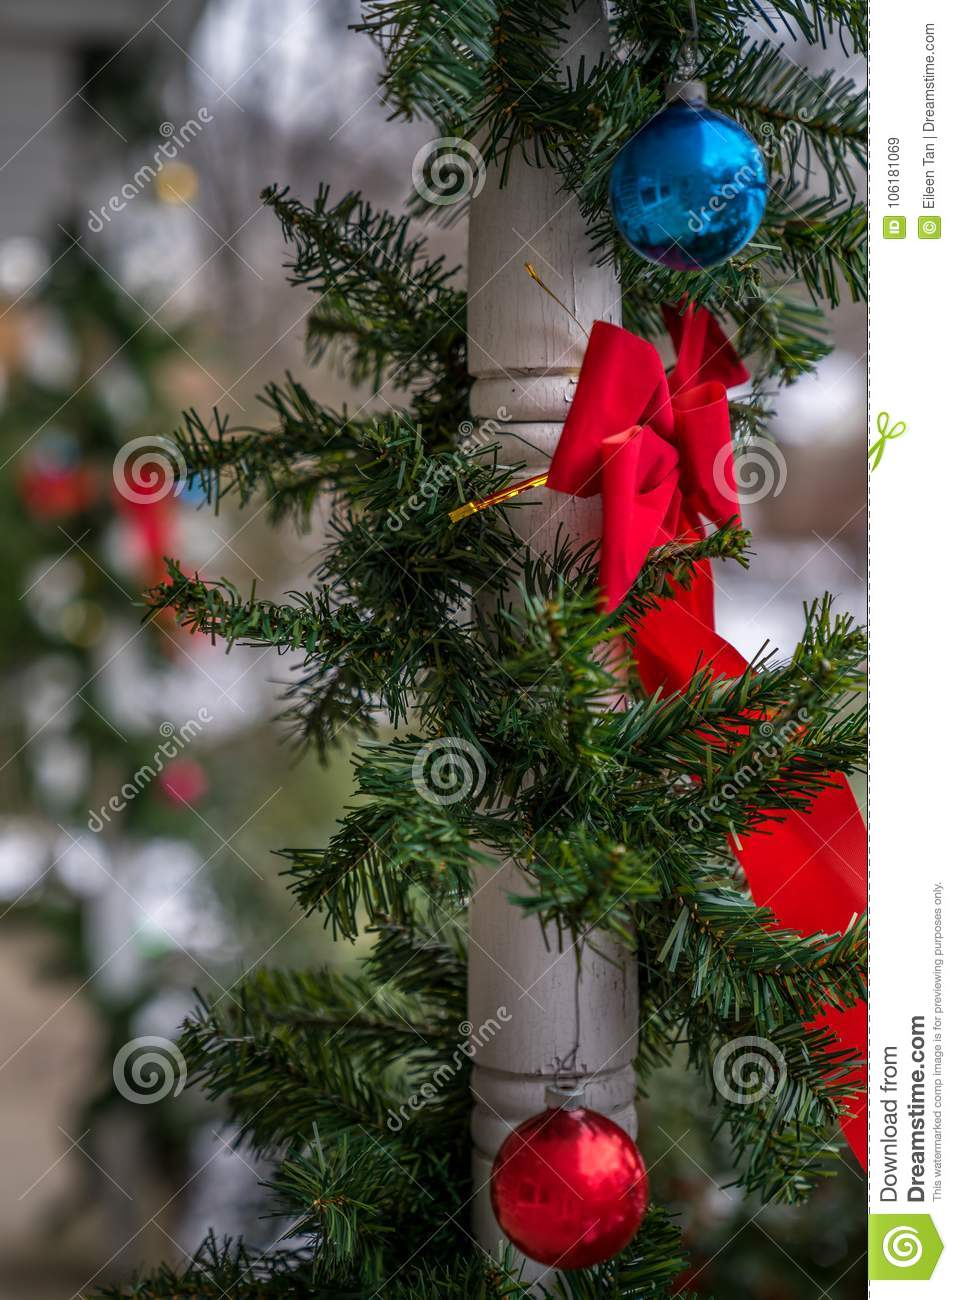 download outdoor christmas decorations stock image image of outdoors snow 106181069 - Christmas Column Decorations